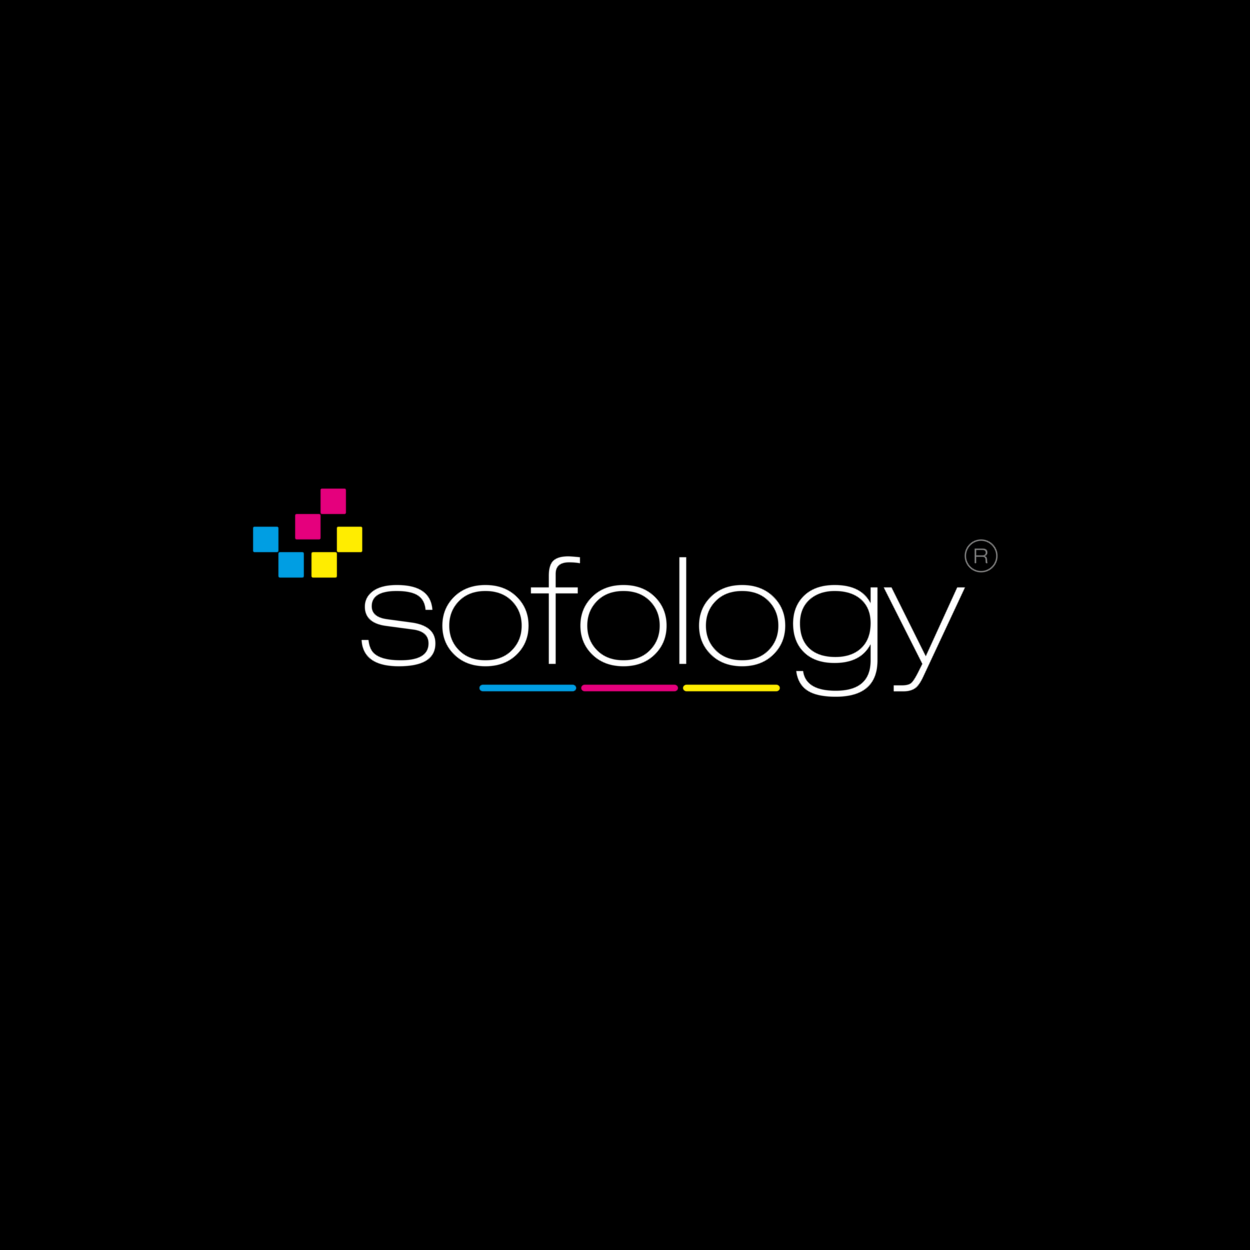 Sofology Plymouth - Plymouth, Devon PL6 8ET - 03444 818009 | ShowMeLocal.com